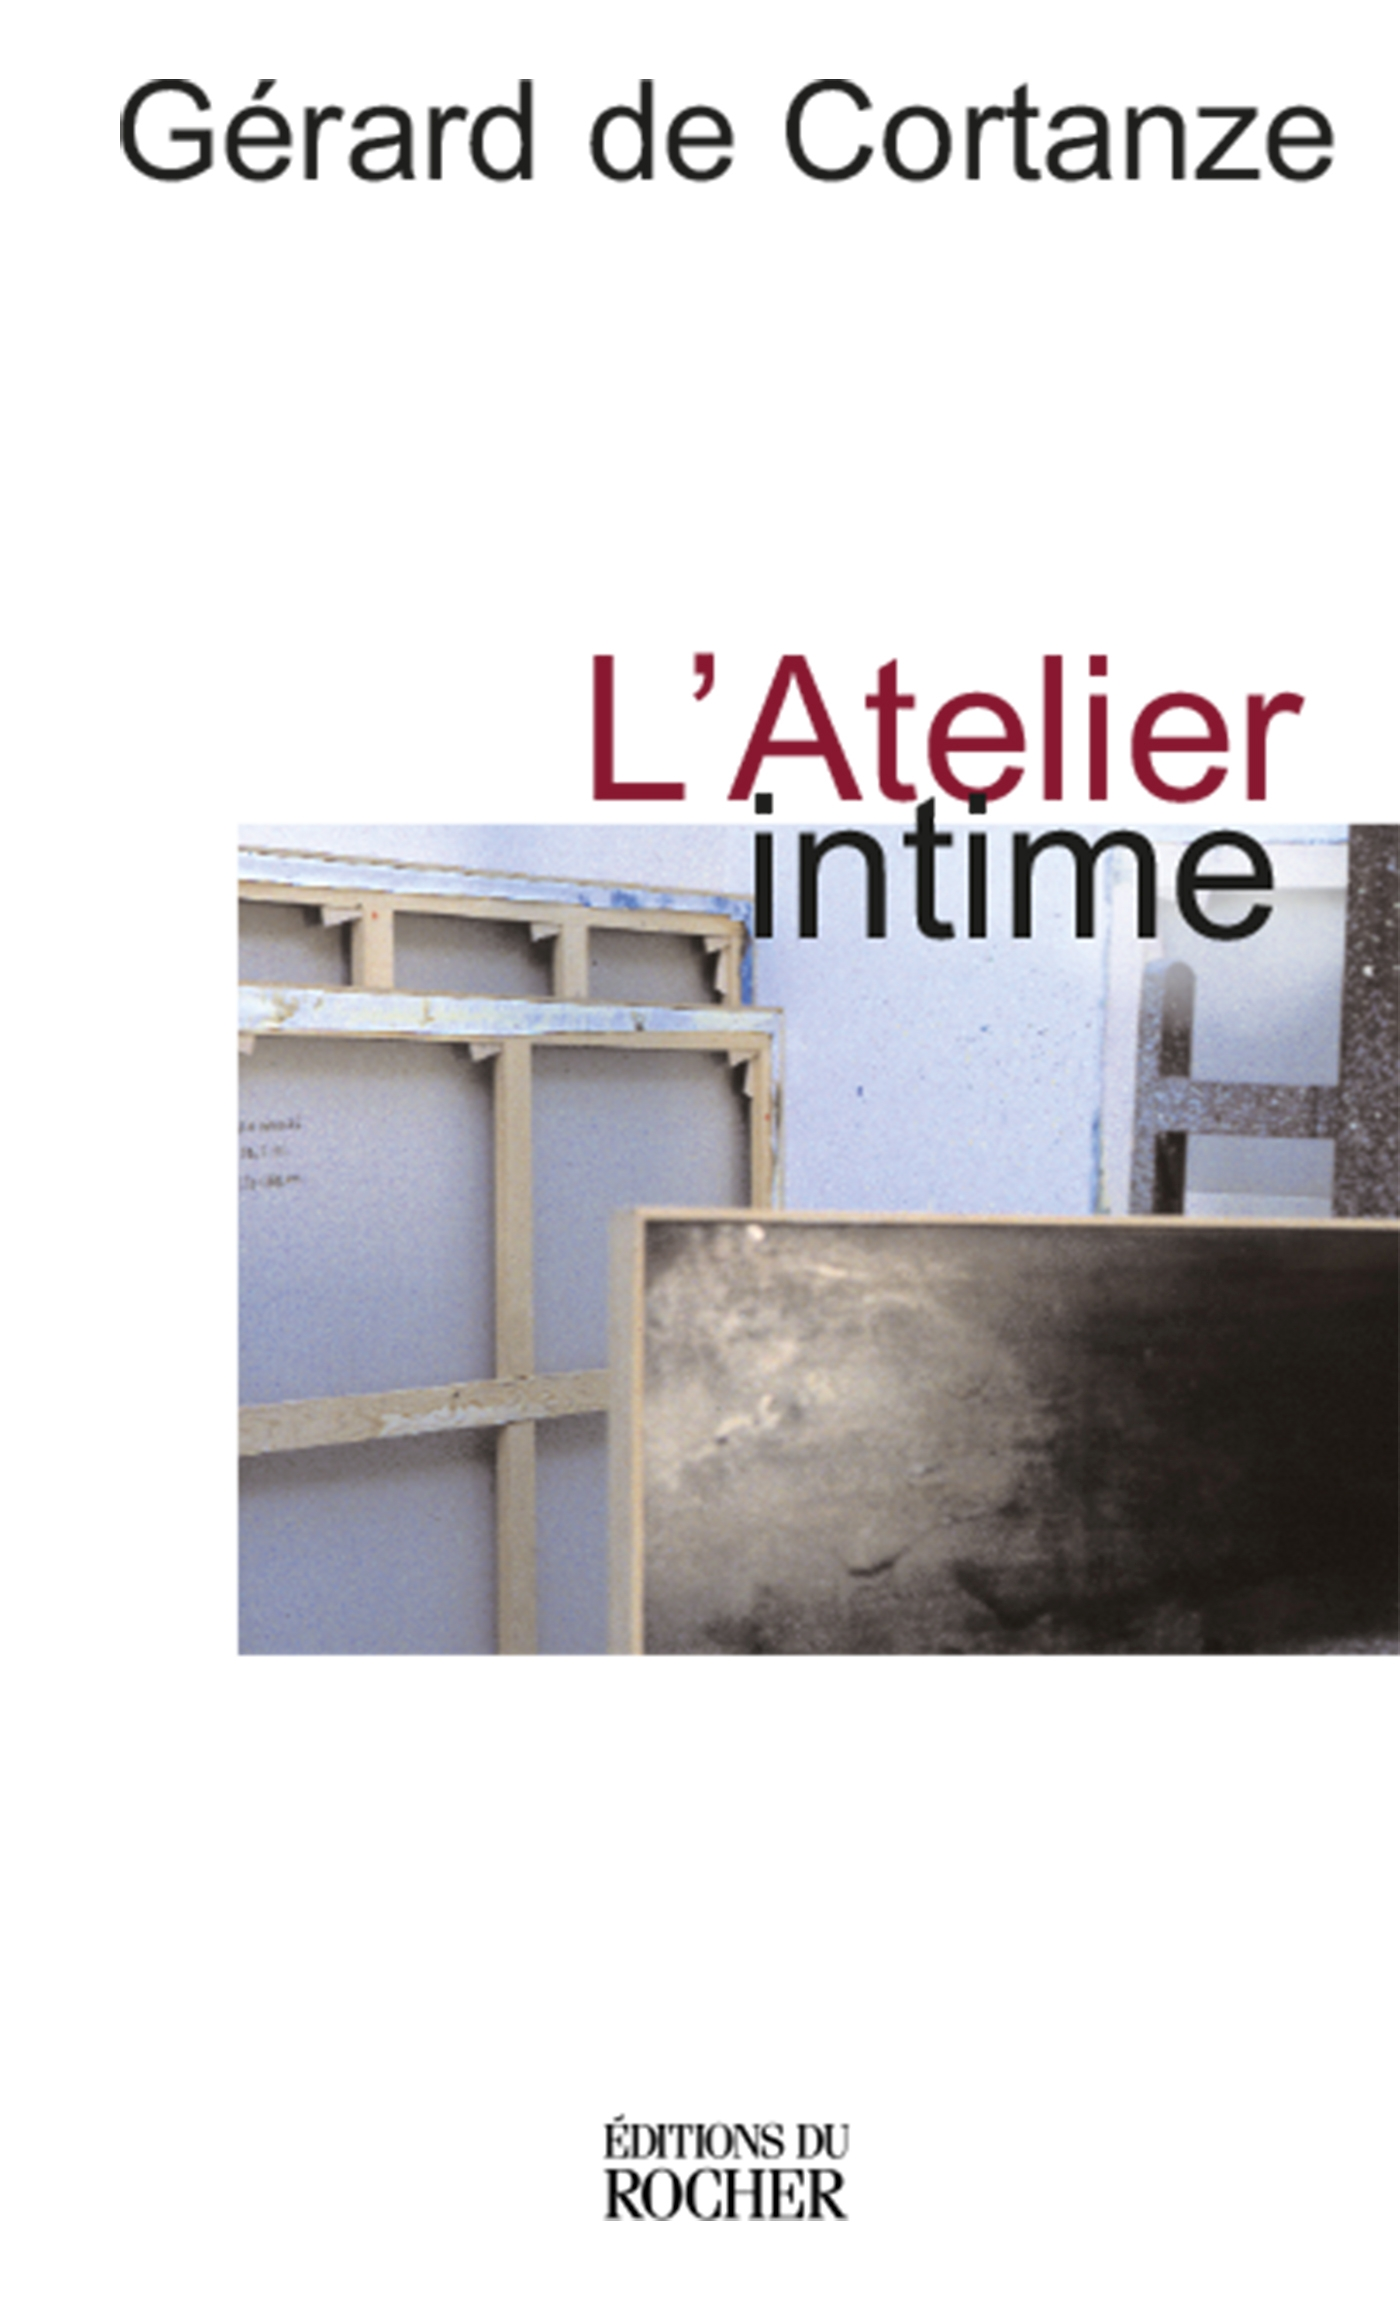 L'atelier intime